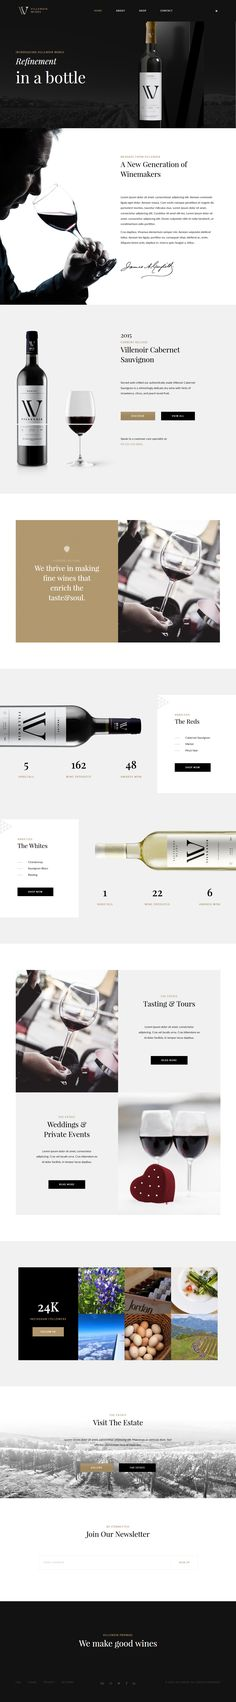 Beautifully crafted WordPress theme best suitable for vineyard, winery and wine websites.